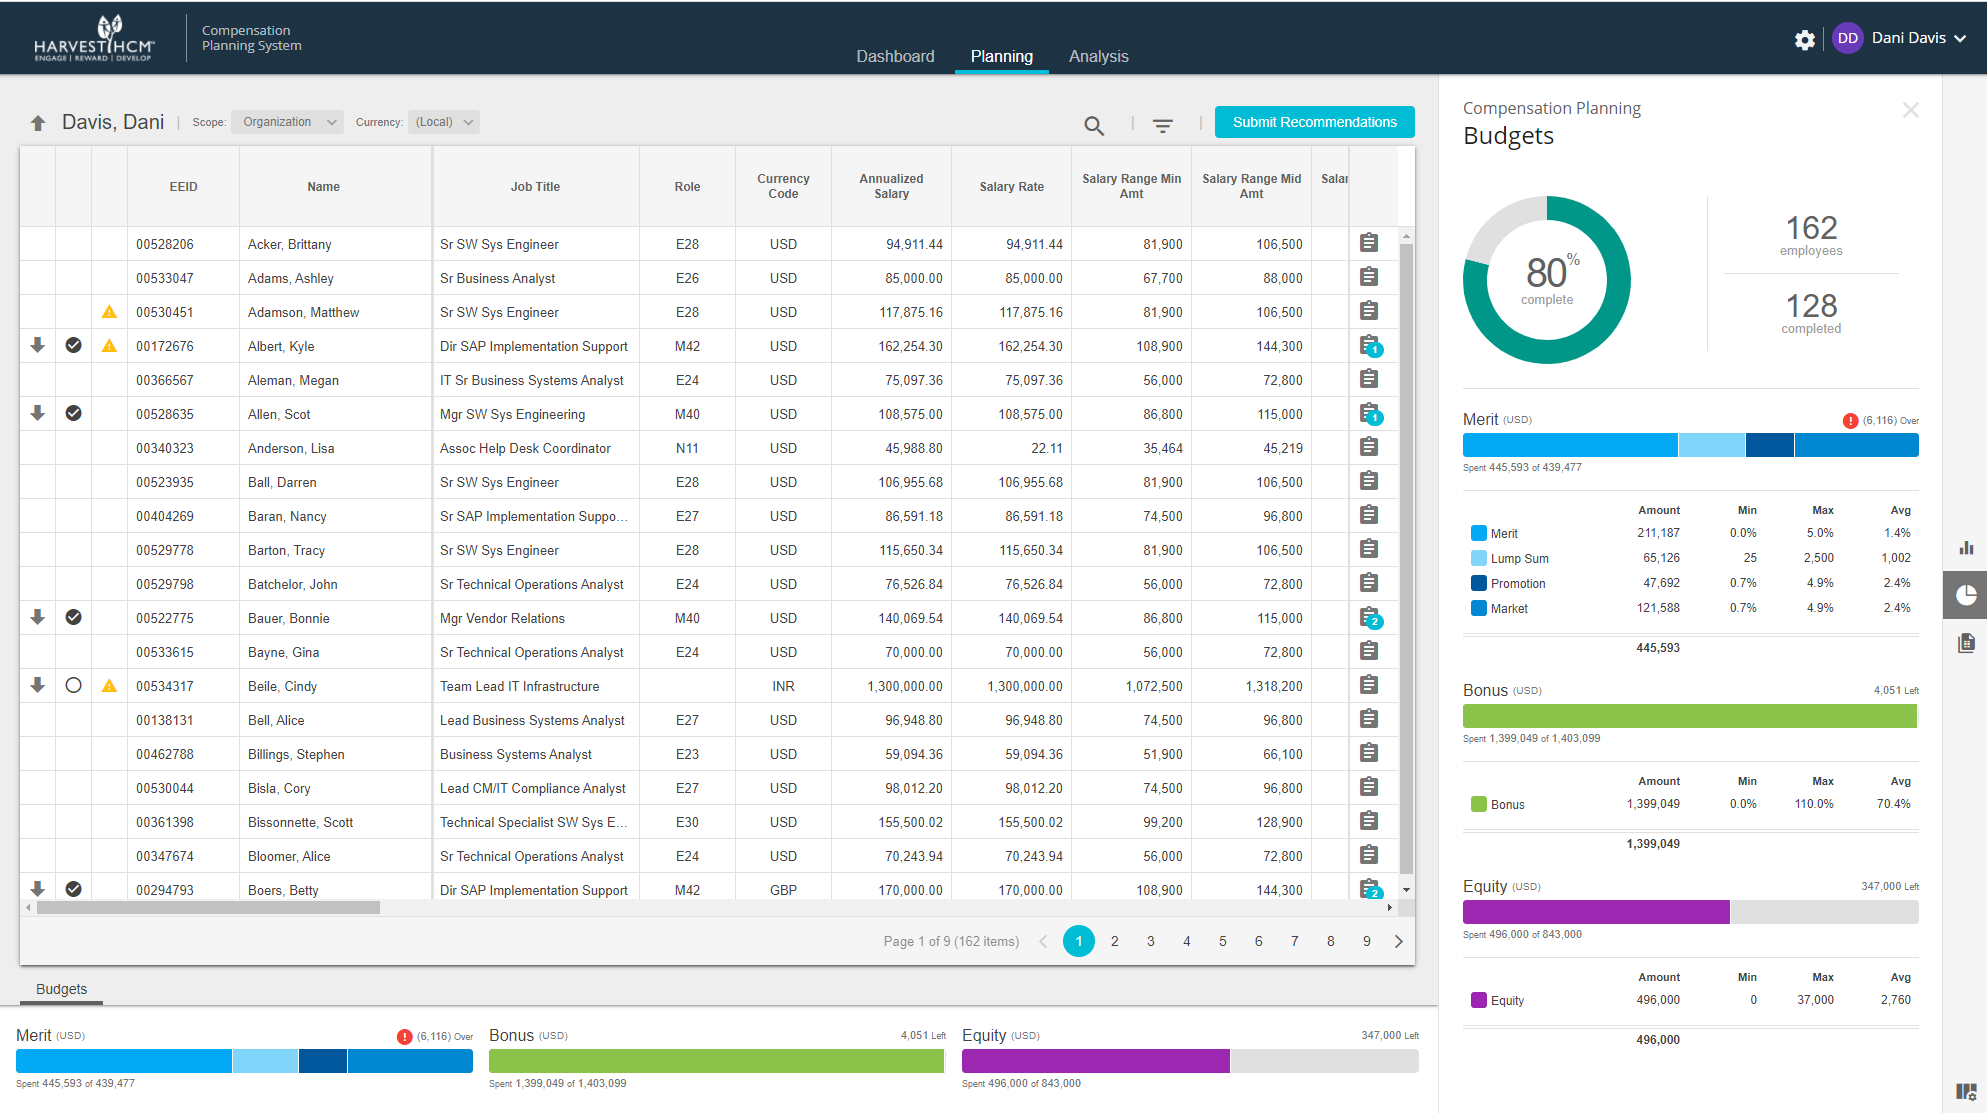 Complogix Compensation screenshot: Comprehensive planning with real-time budgeting.